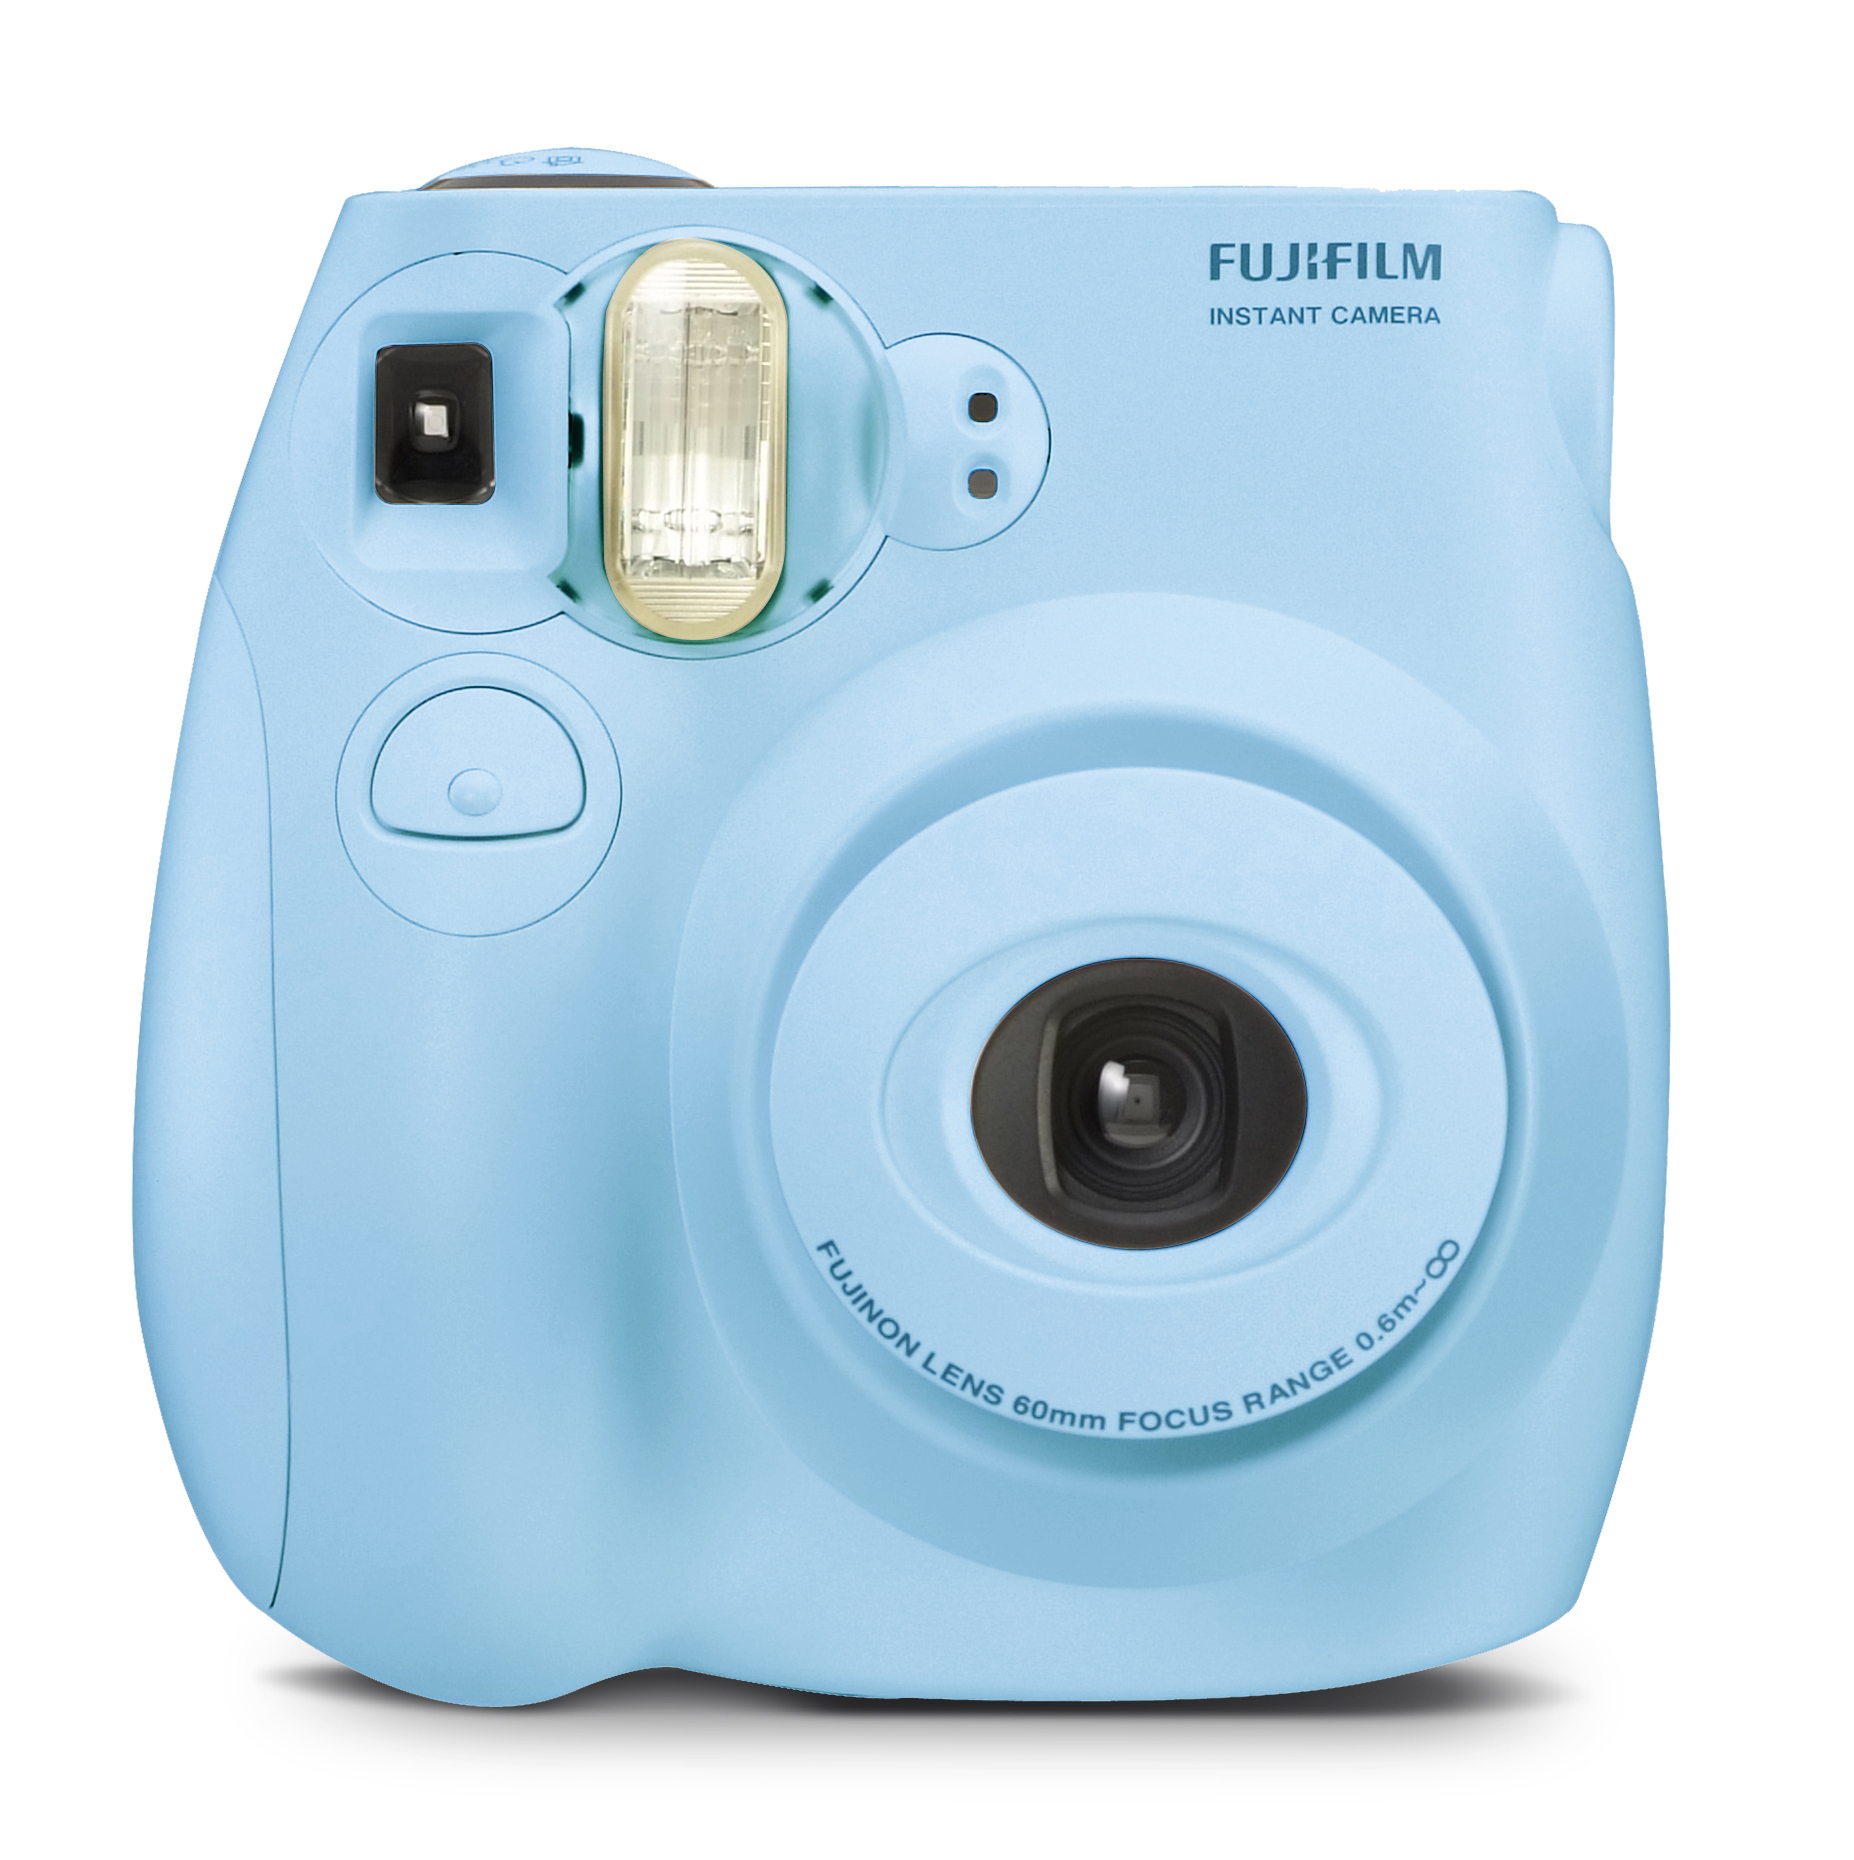 Fujifilm Instax Mini 7s Instant Camera W Matching Case Film Photo Album Photo Holders Light Blue Walmart Com Walmart Com